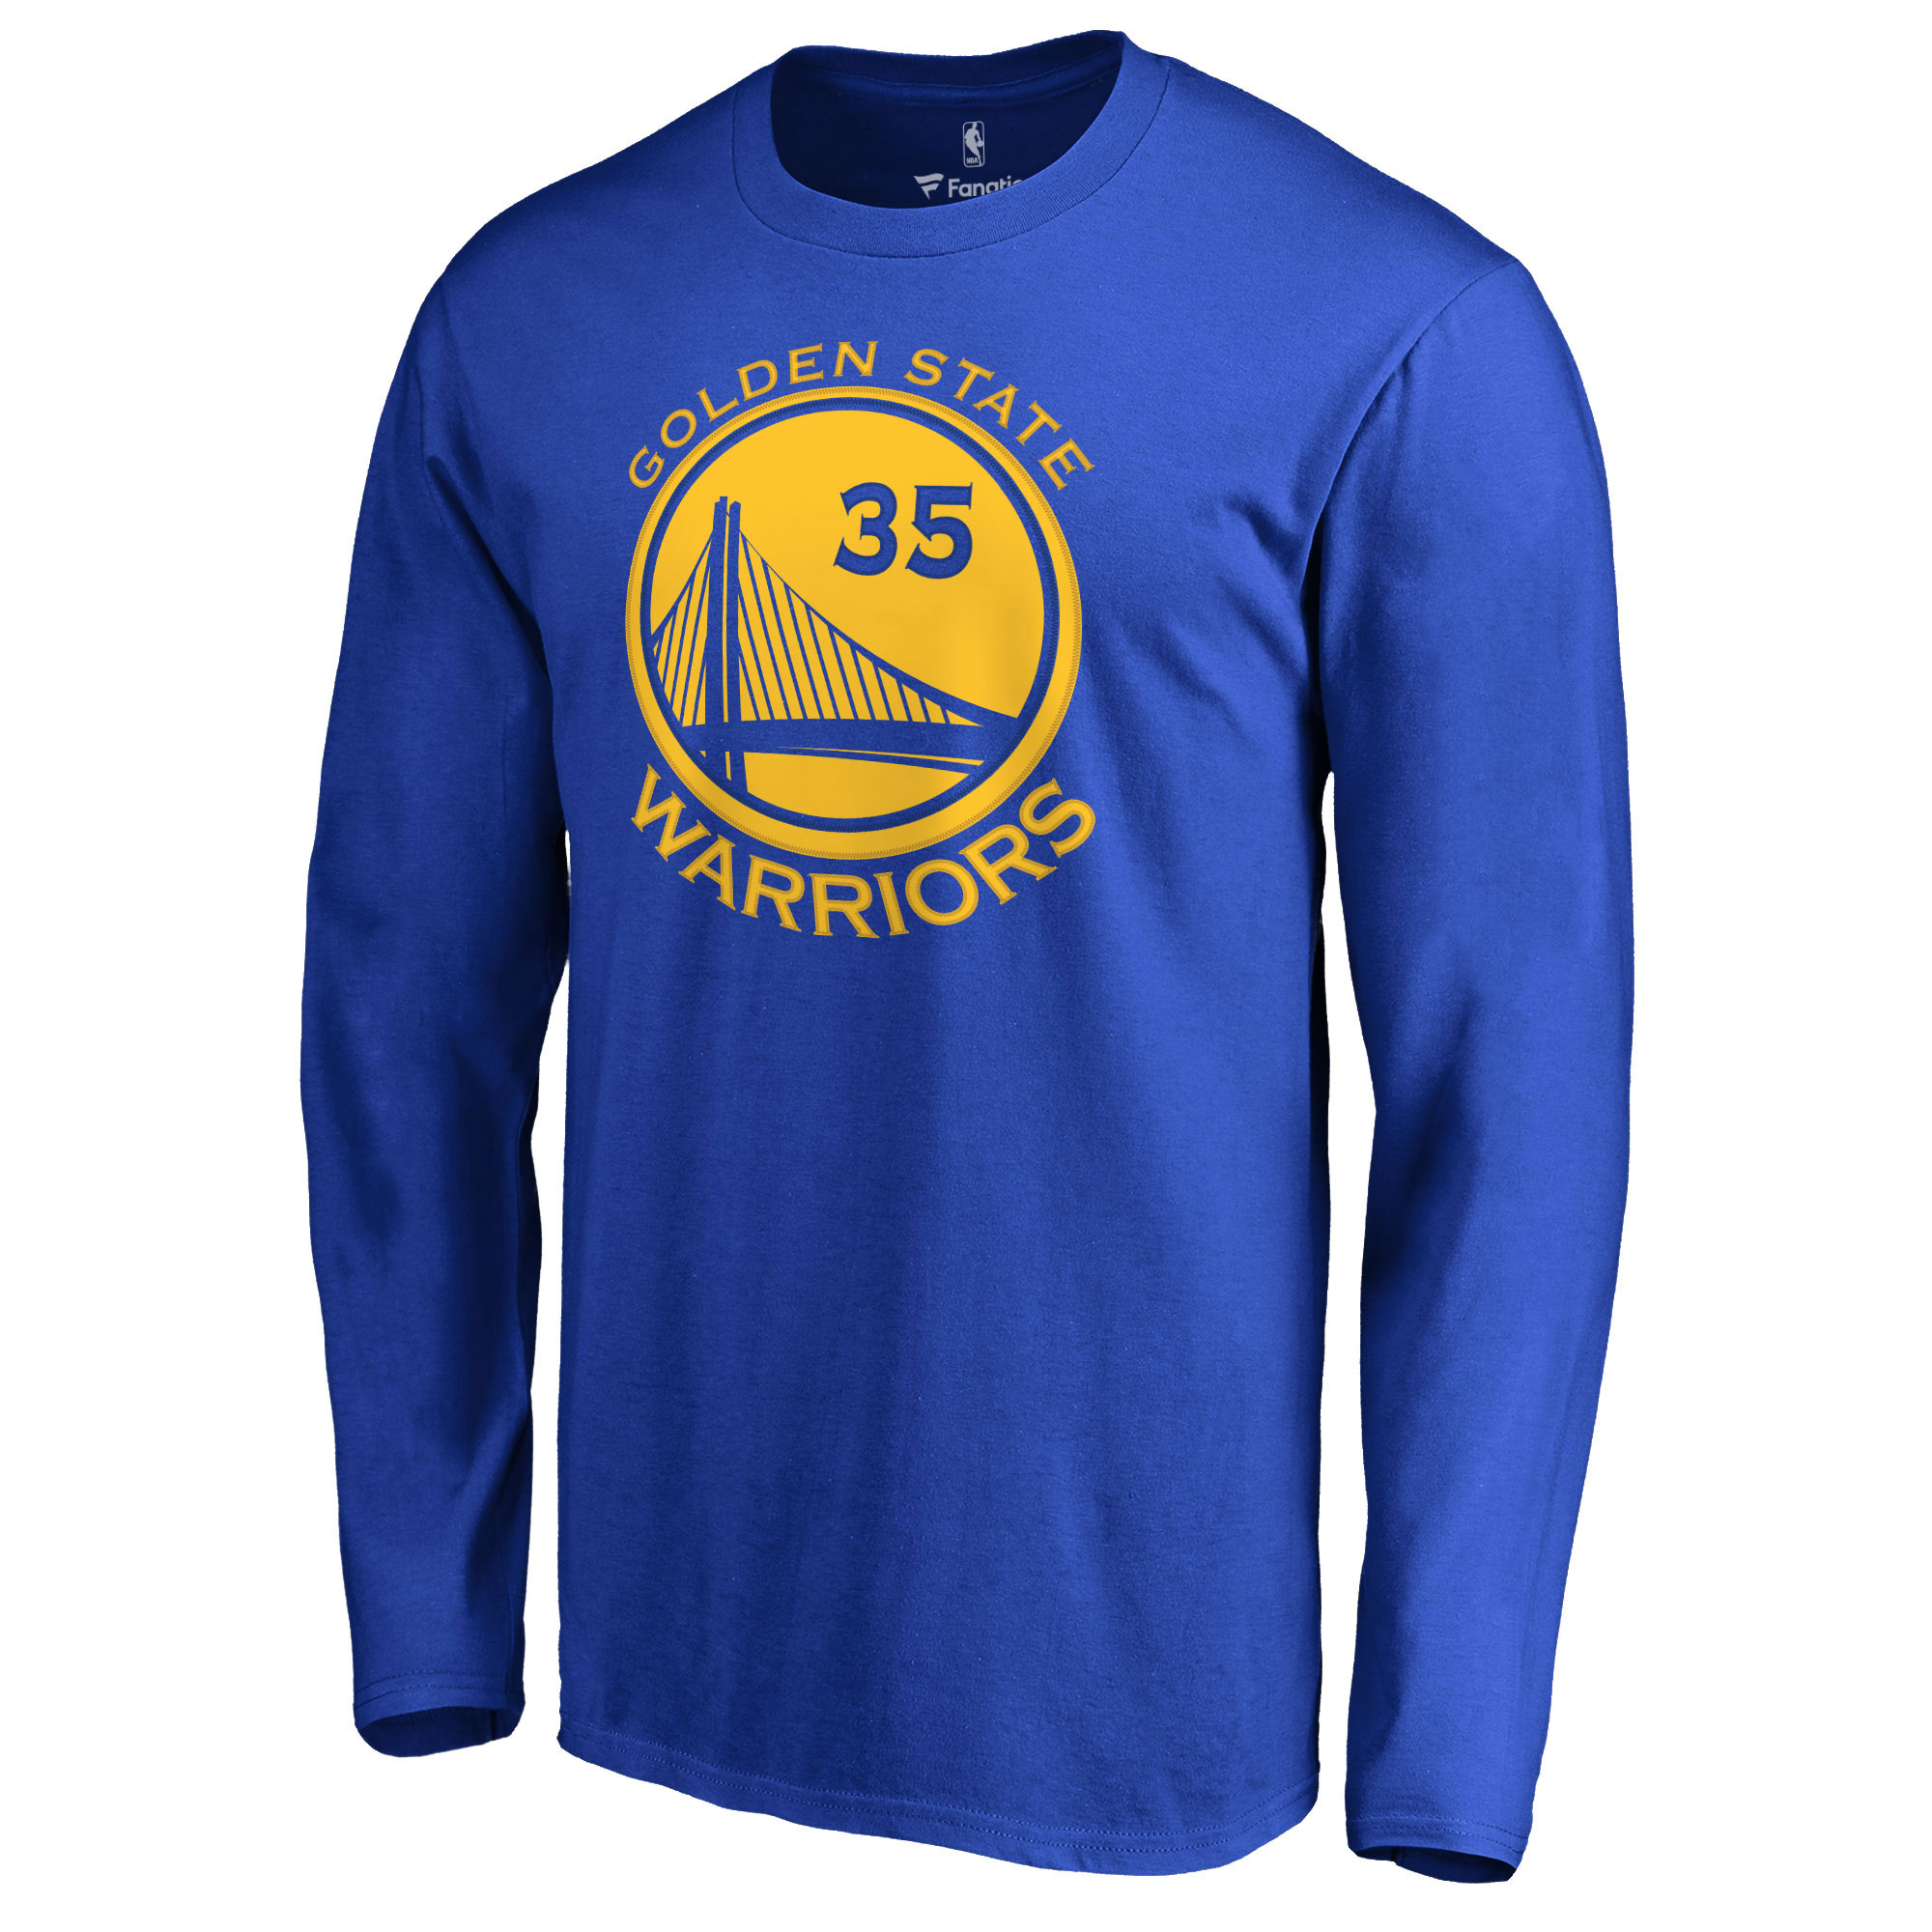 29d22534 Kevin Durant Golden State Warriors Fanatics Branded Backer Name & Number  Long Sleeve T-Shirt - Royal